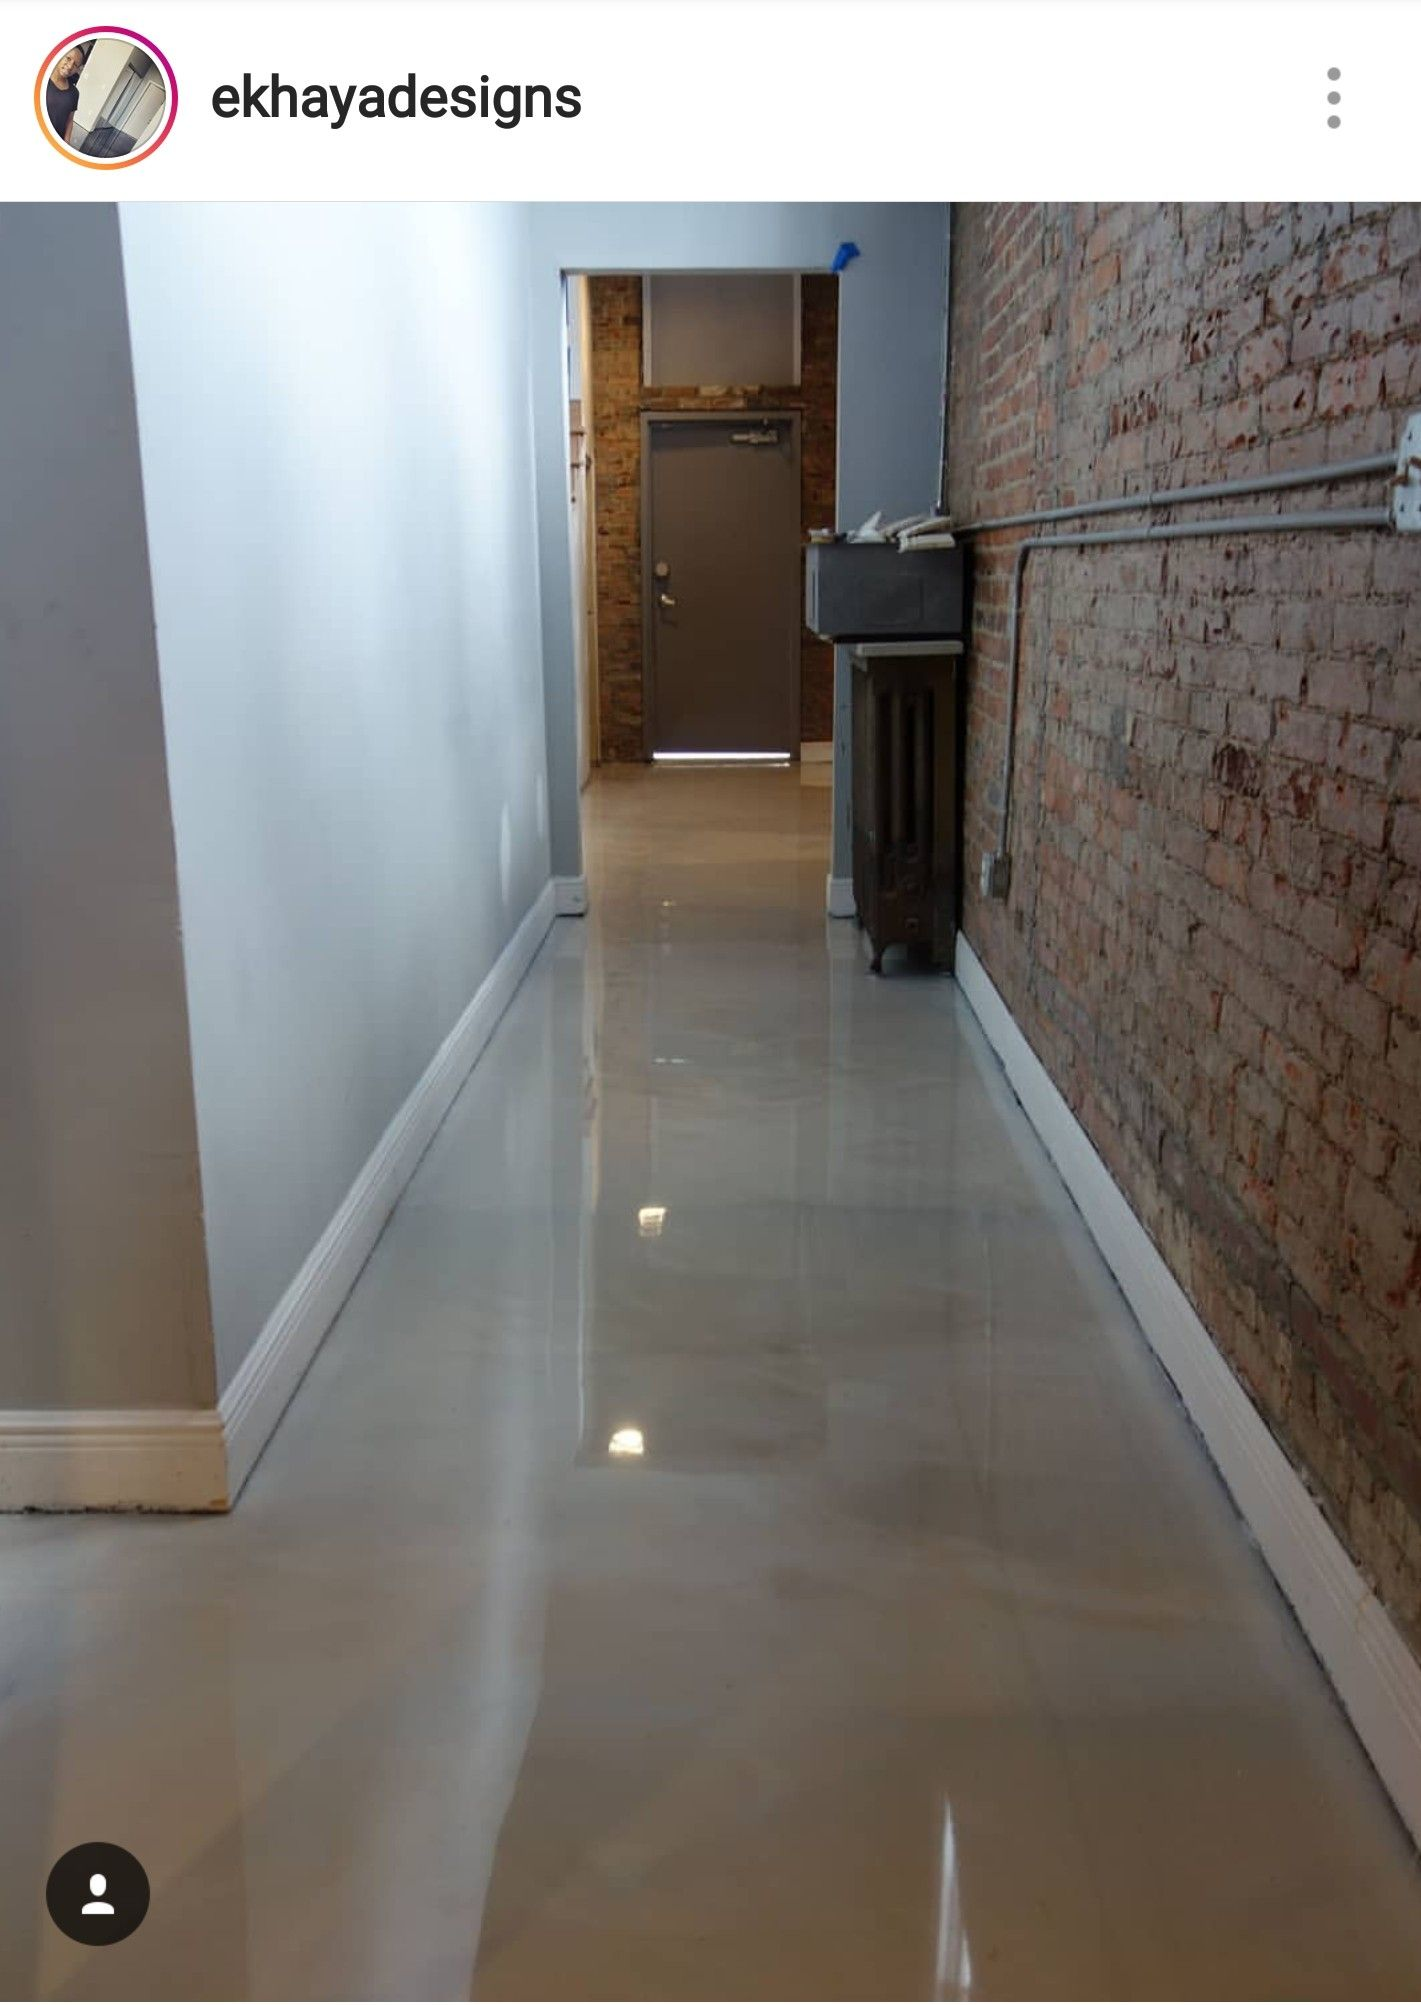 Epoxy Flooring Is Becoming A Trend But It Has Been Around For A Long Time Is Been Used In Hospitals Fire Houses Air Epoxy Floor House Fire Types Of Flooring